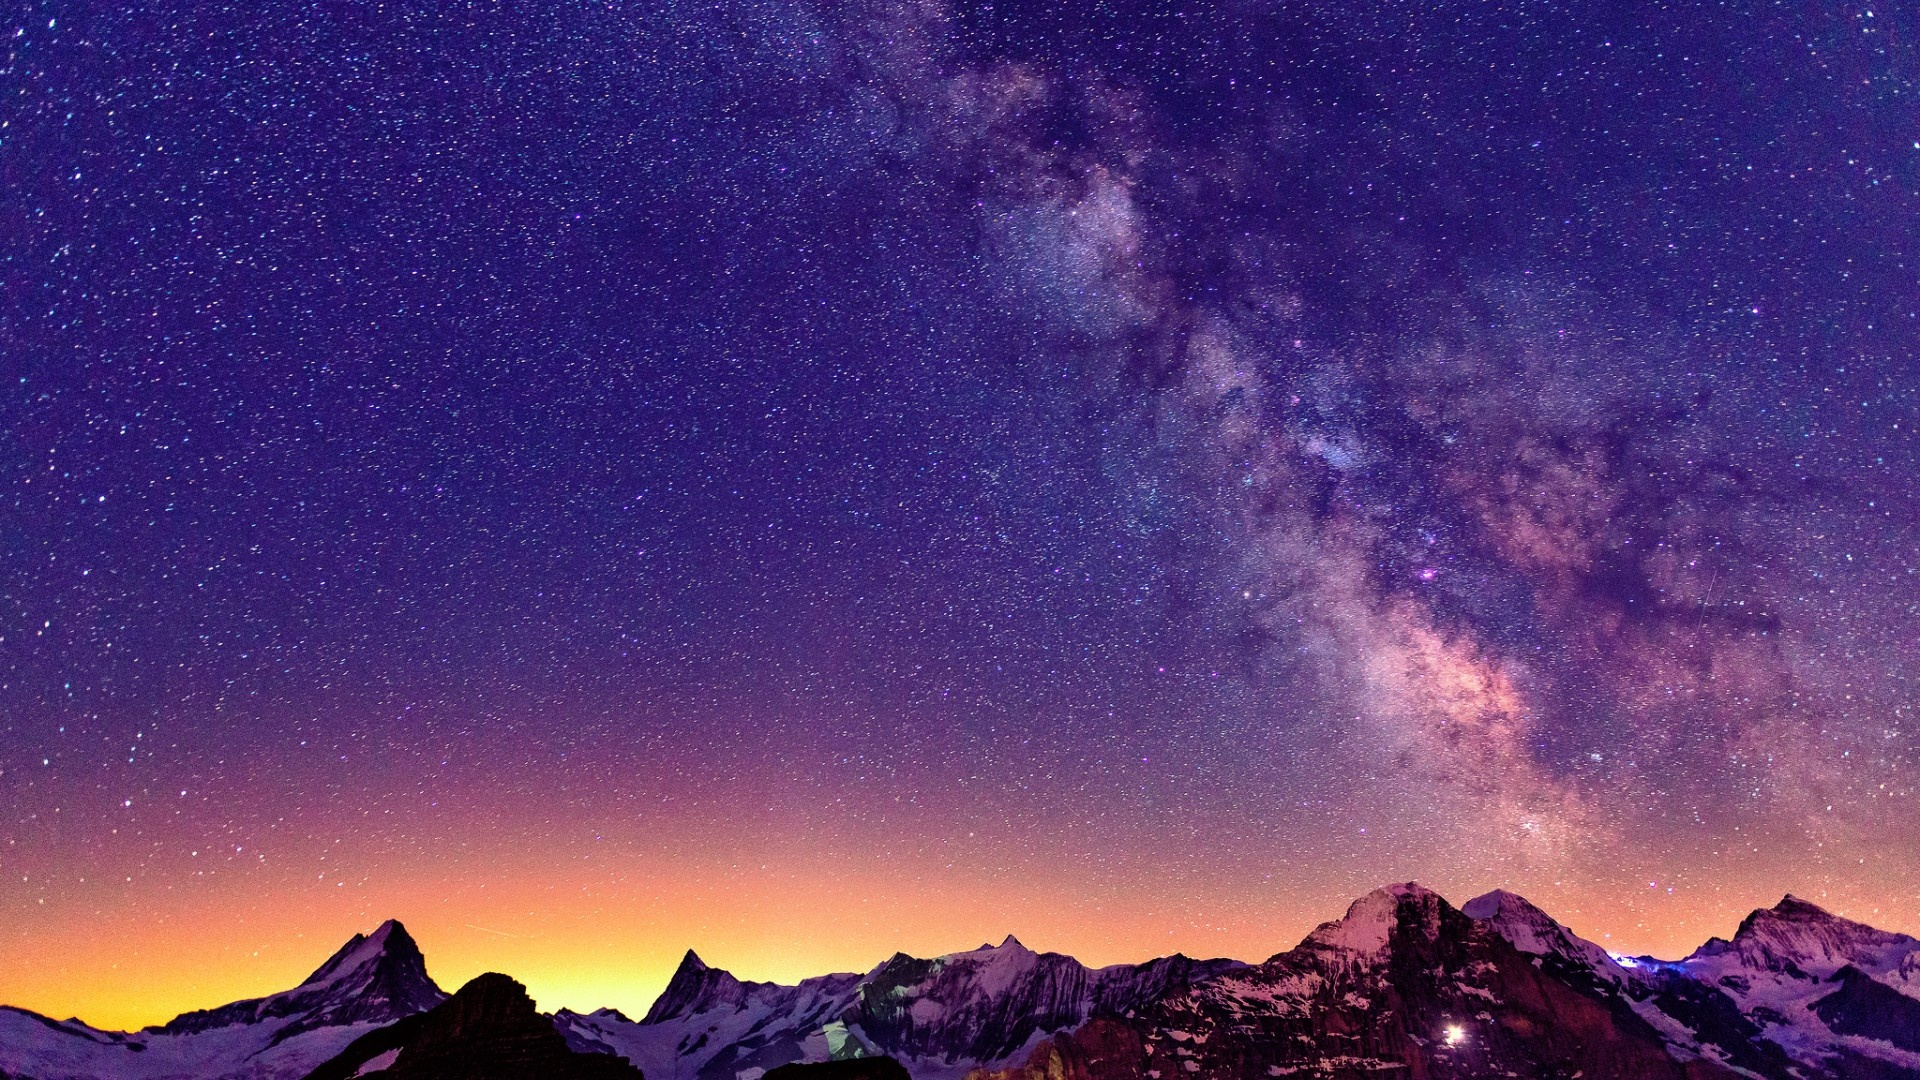 Must see Wallpaper Mountain Star - switzerland_mountains_sky_stars-1920x1080  Pictures_37206.jpg